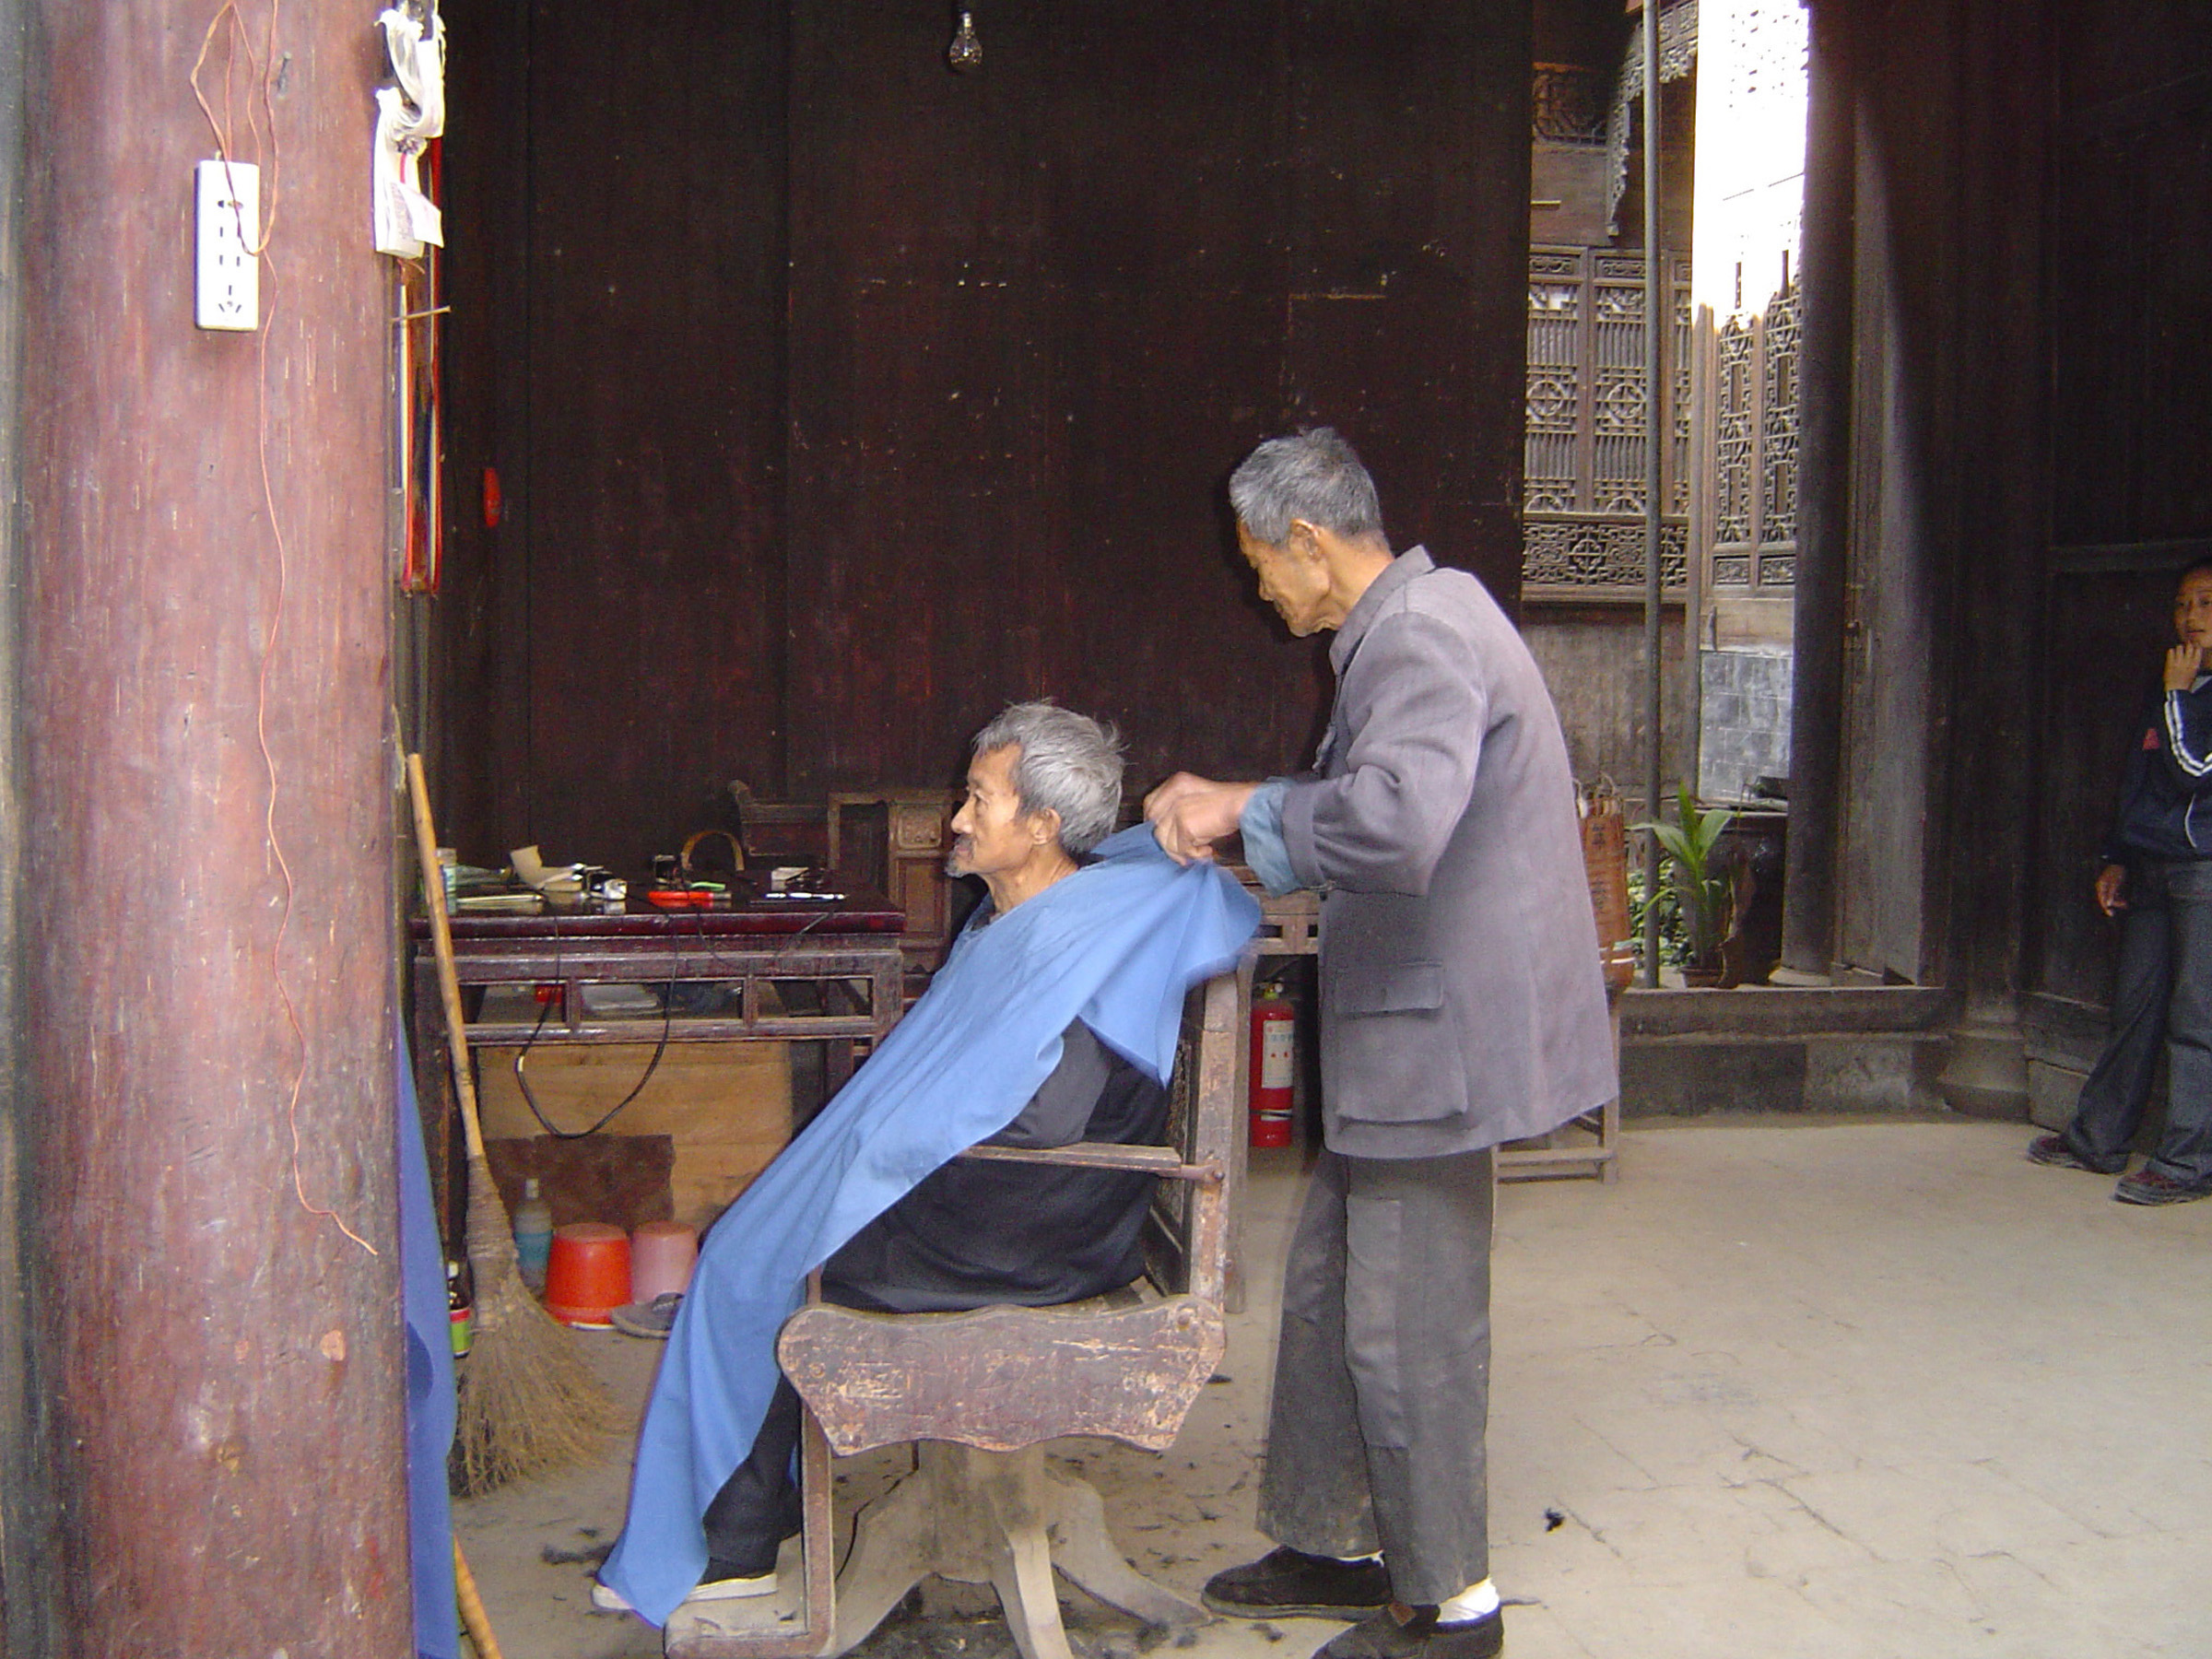 Old Professional Chinese Barber with Old Male Customer at Vintage Barber Shop in China.